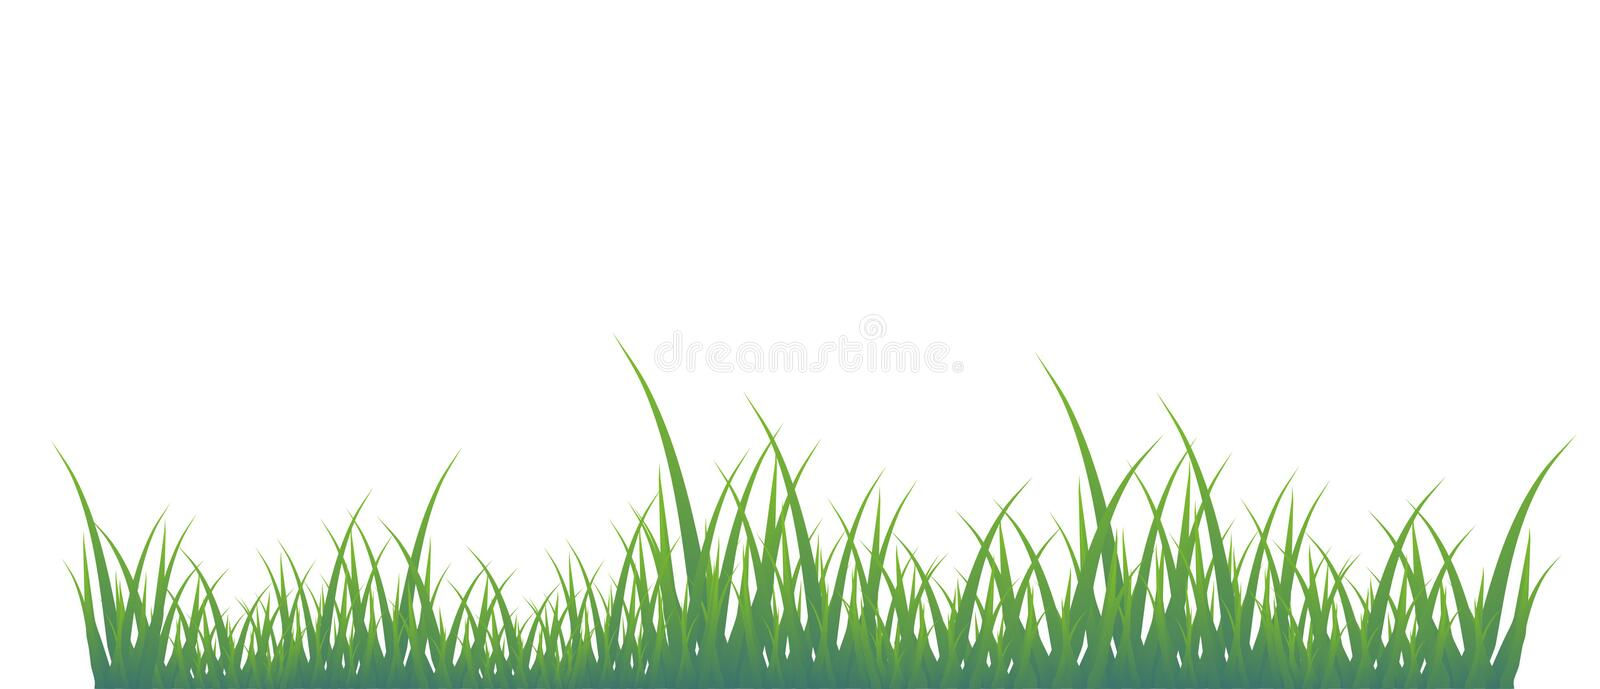 Green grass royalty free illustration